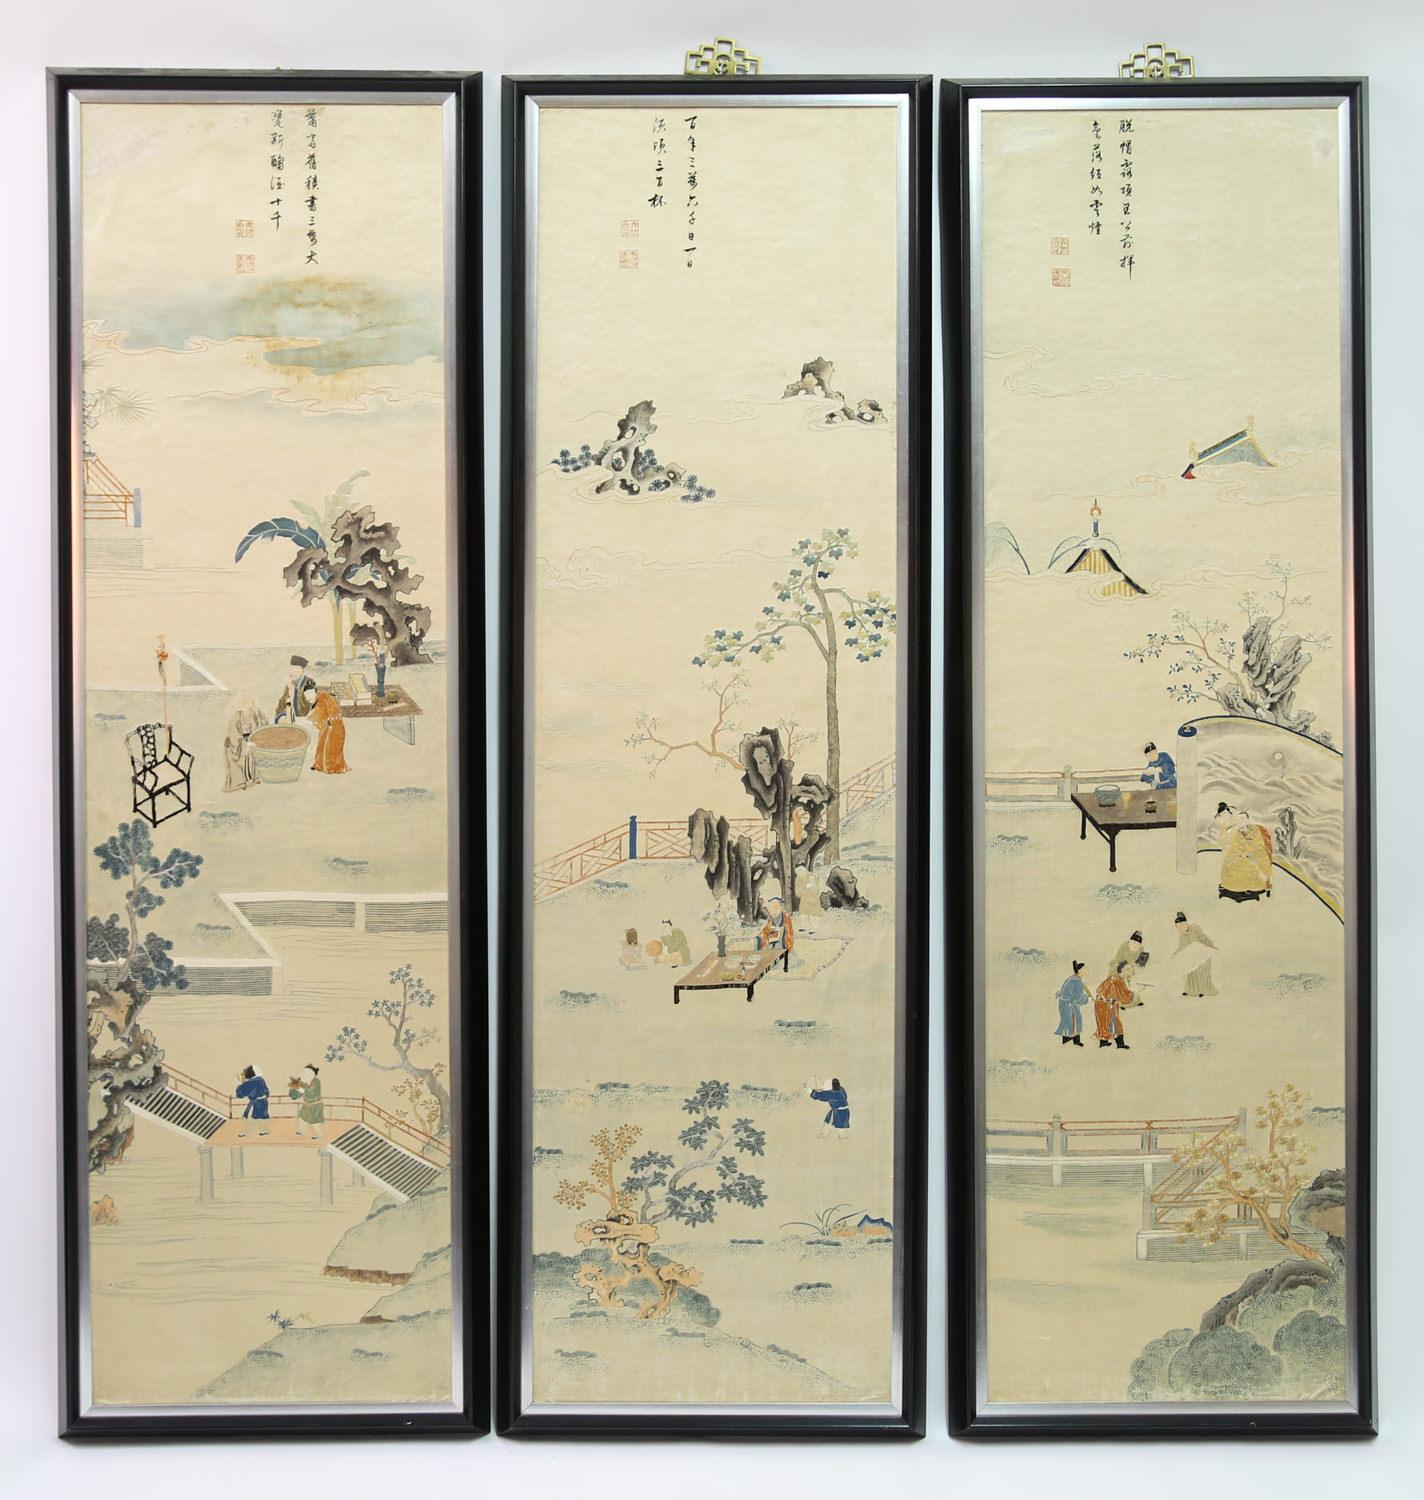 Three Chinese Embroidered and Painted Silk Panels Qing Dynasty Asian Art, New York Auction House, Houston Auction, Dallas Auction, San Antonio, Chinese Auciton, 中国艺术拍卖, 海外捡漏,缂丝